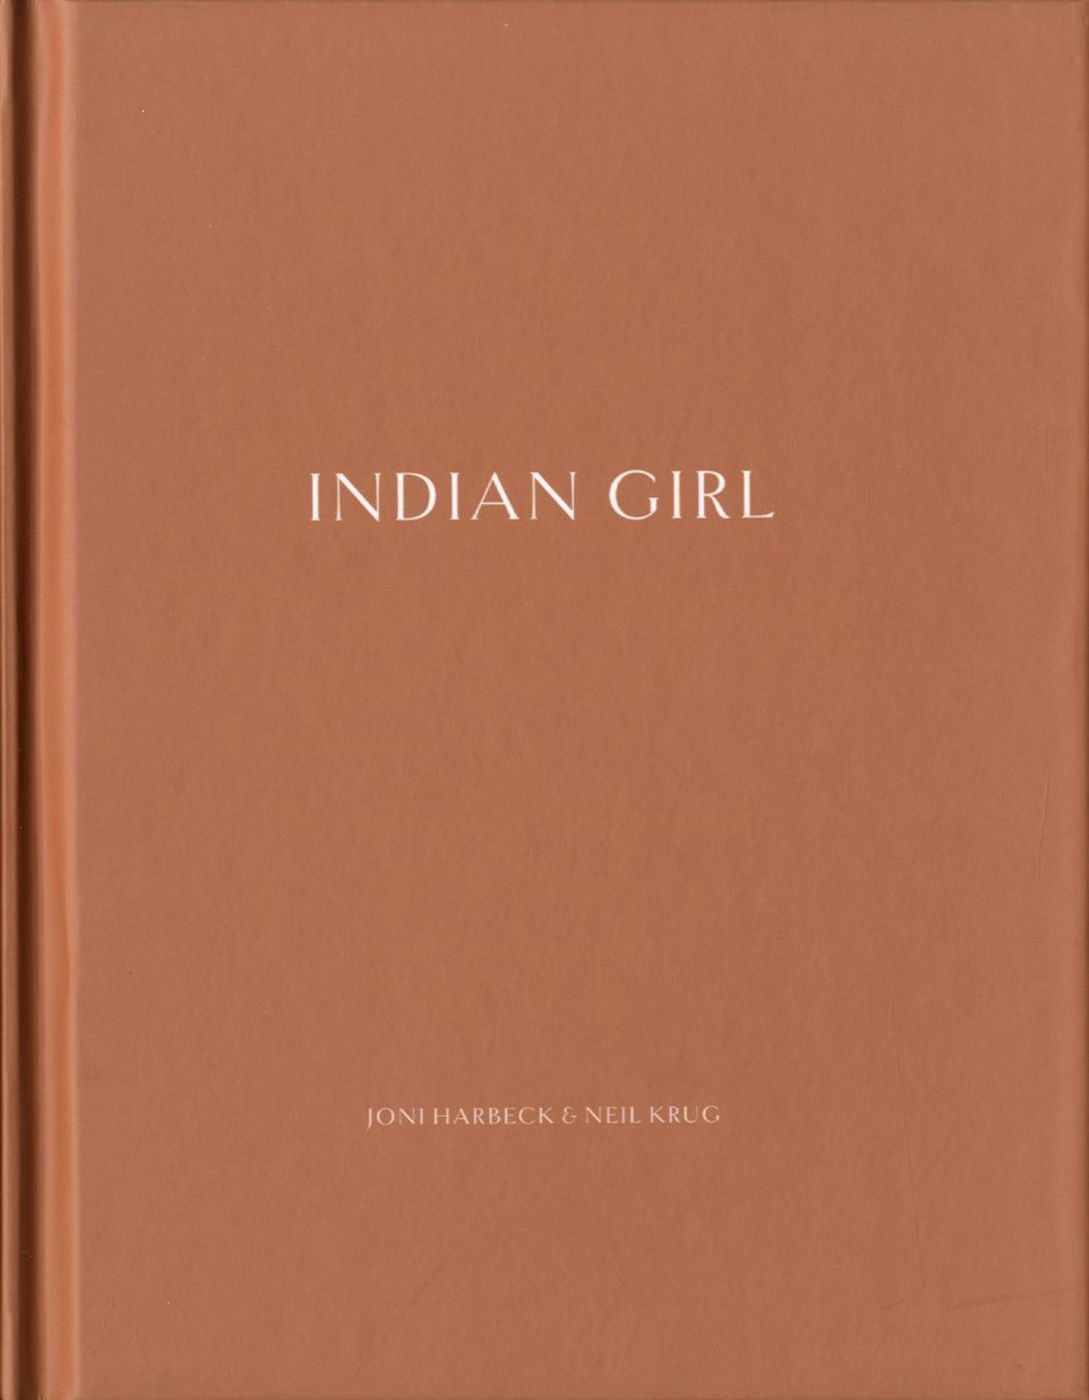 Joni Harbeck & Neil Krug: Indian Girl (One Picture Book #70), Limited Edition (with Print)